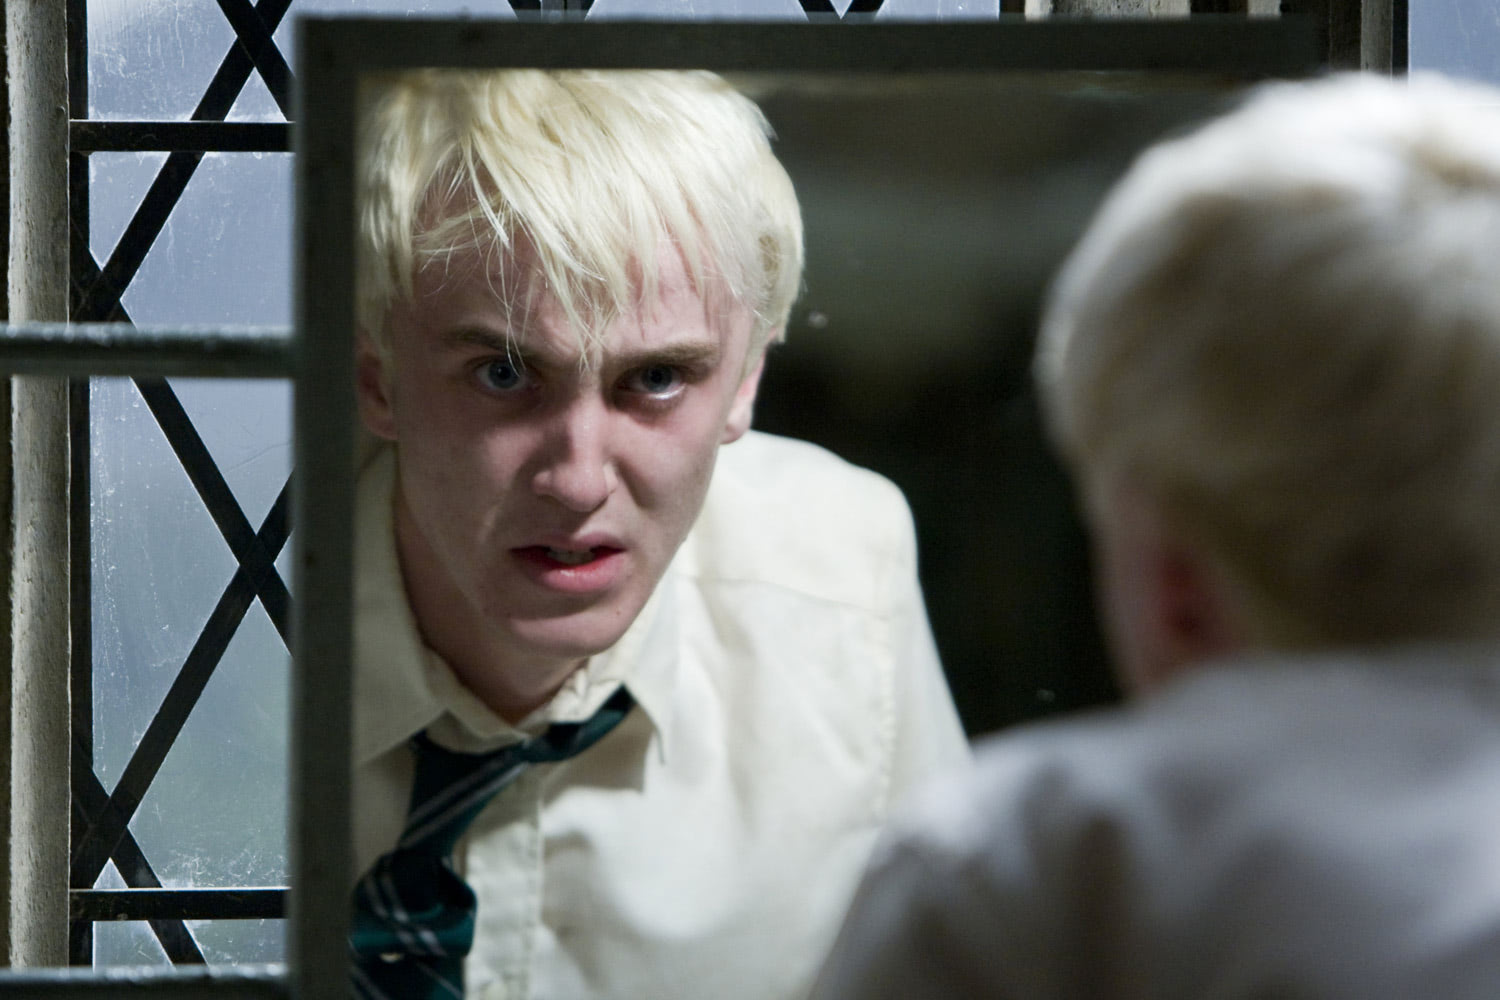 Draco Malfoy looks in the mirror